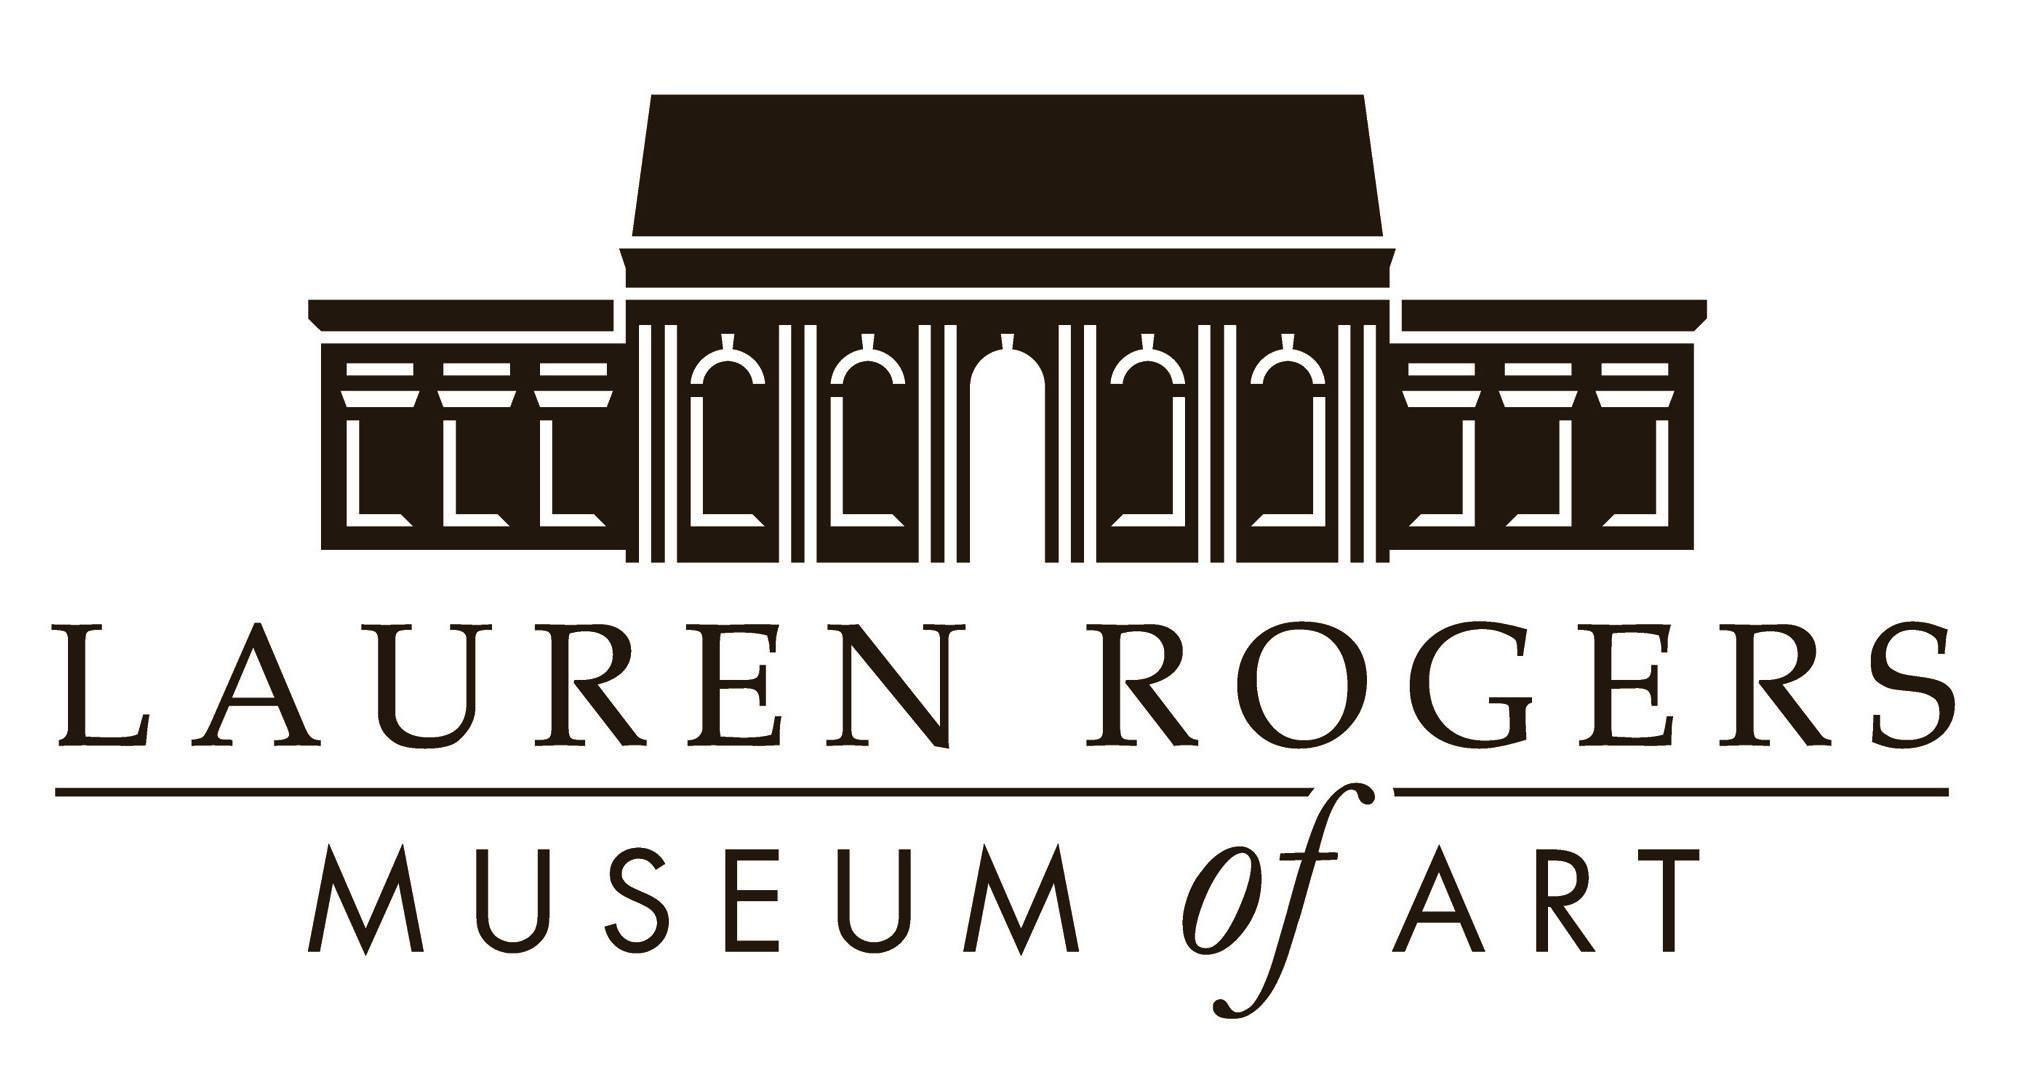 Lauren Rogers Museum of Art